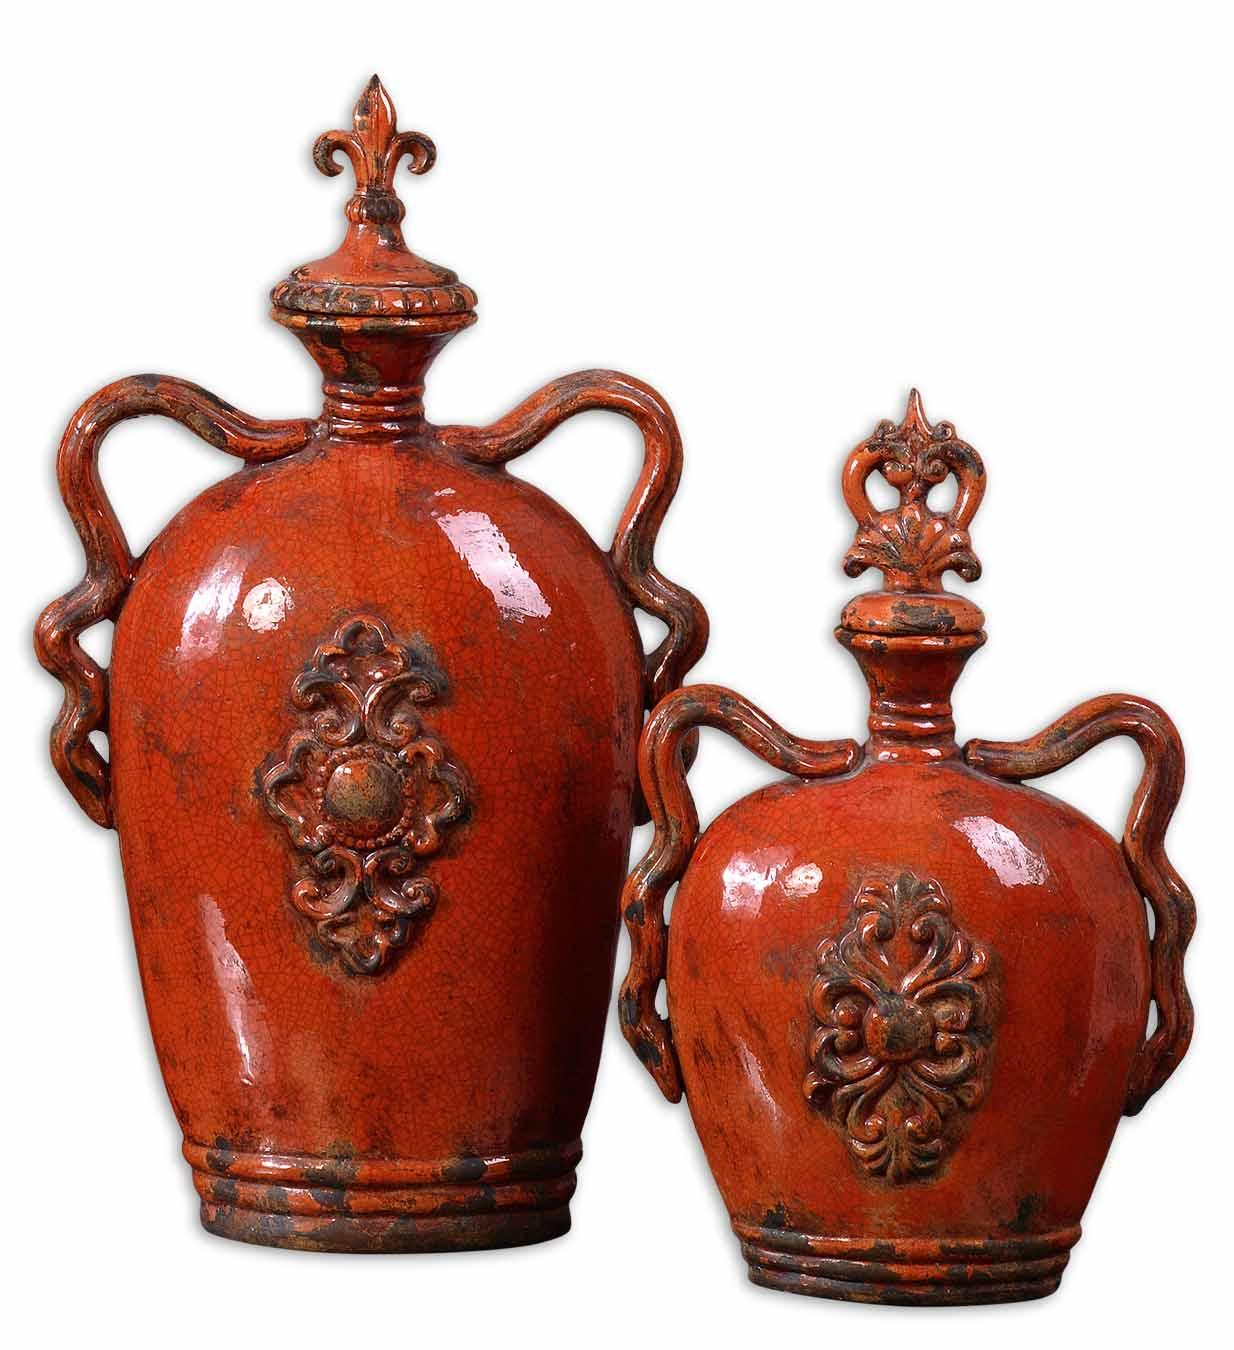 Uttermost Accessories Raya Containers Set of 2 - Item Number: 19525